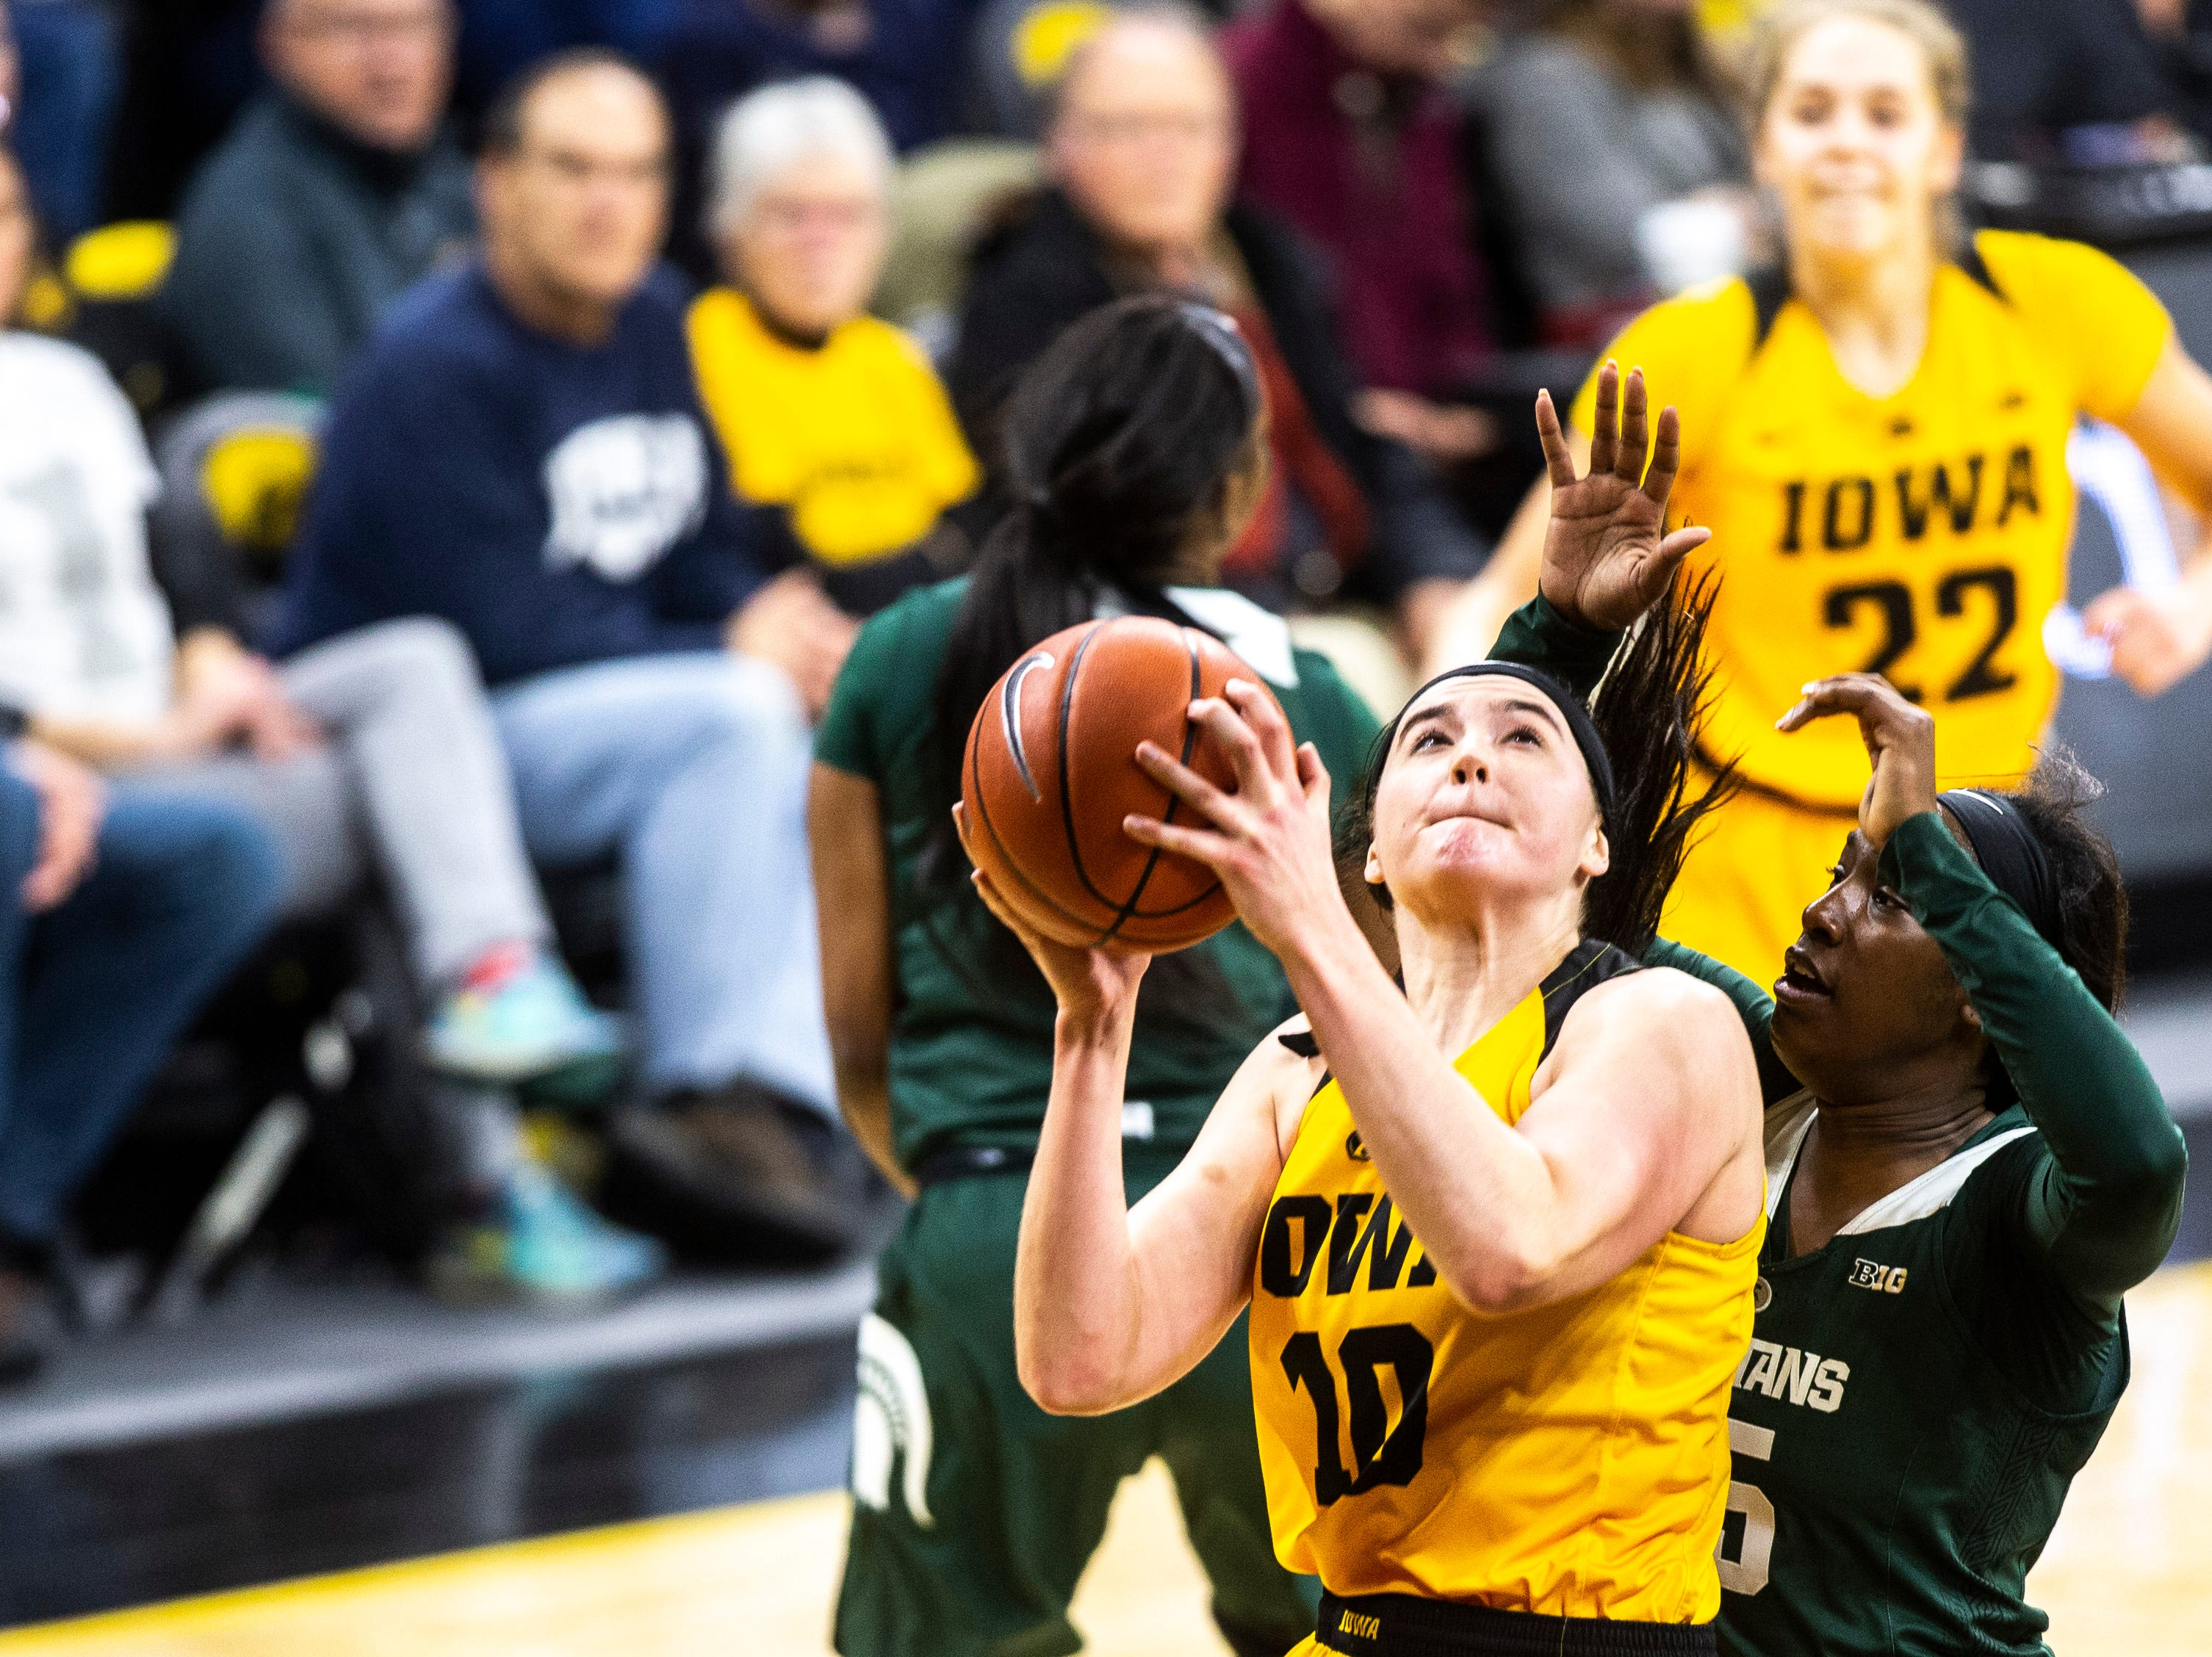 Iowa center Megan Gustafson (10) drives to the hoop while Michigan State forward Victoria Gaines (15) defends during a NCAA Big Ten Conference women's basketball game on Thursday, Feb. 7, 2019 at Carver-Hawkeye Arena in Iowa City, Iowa.